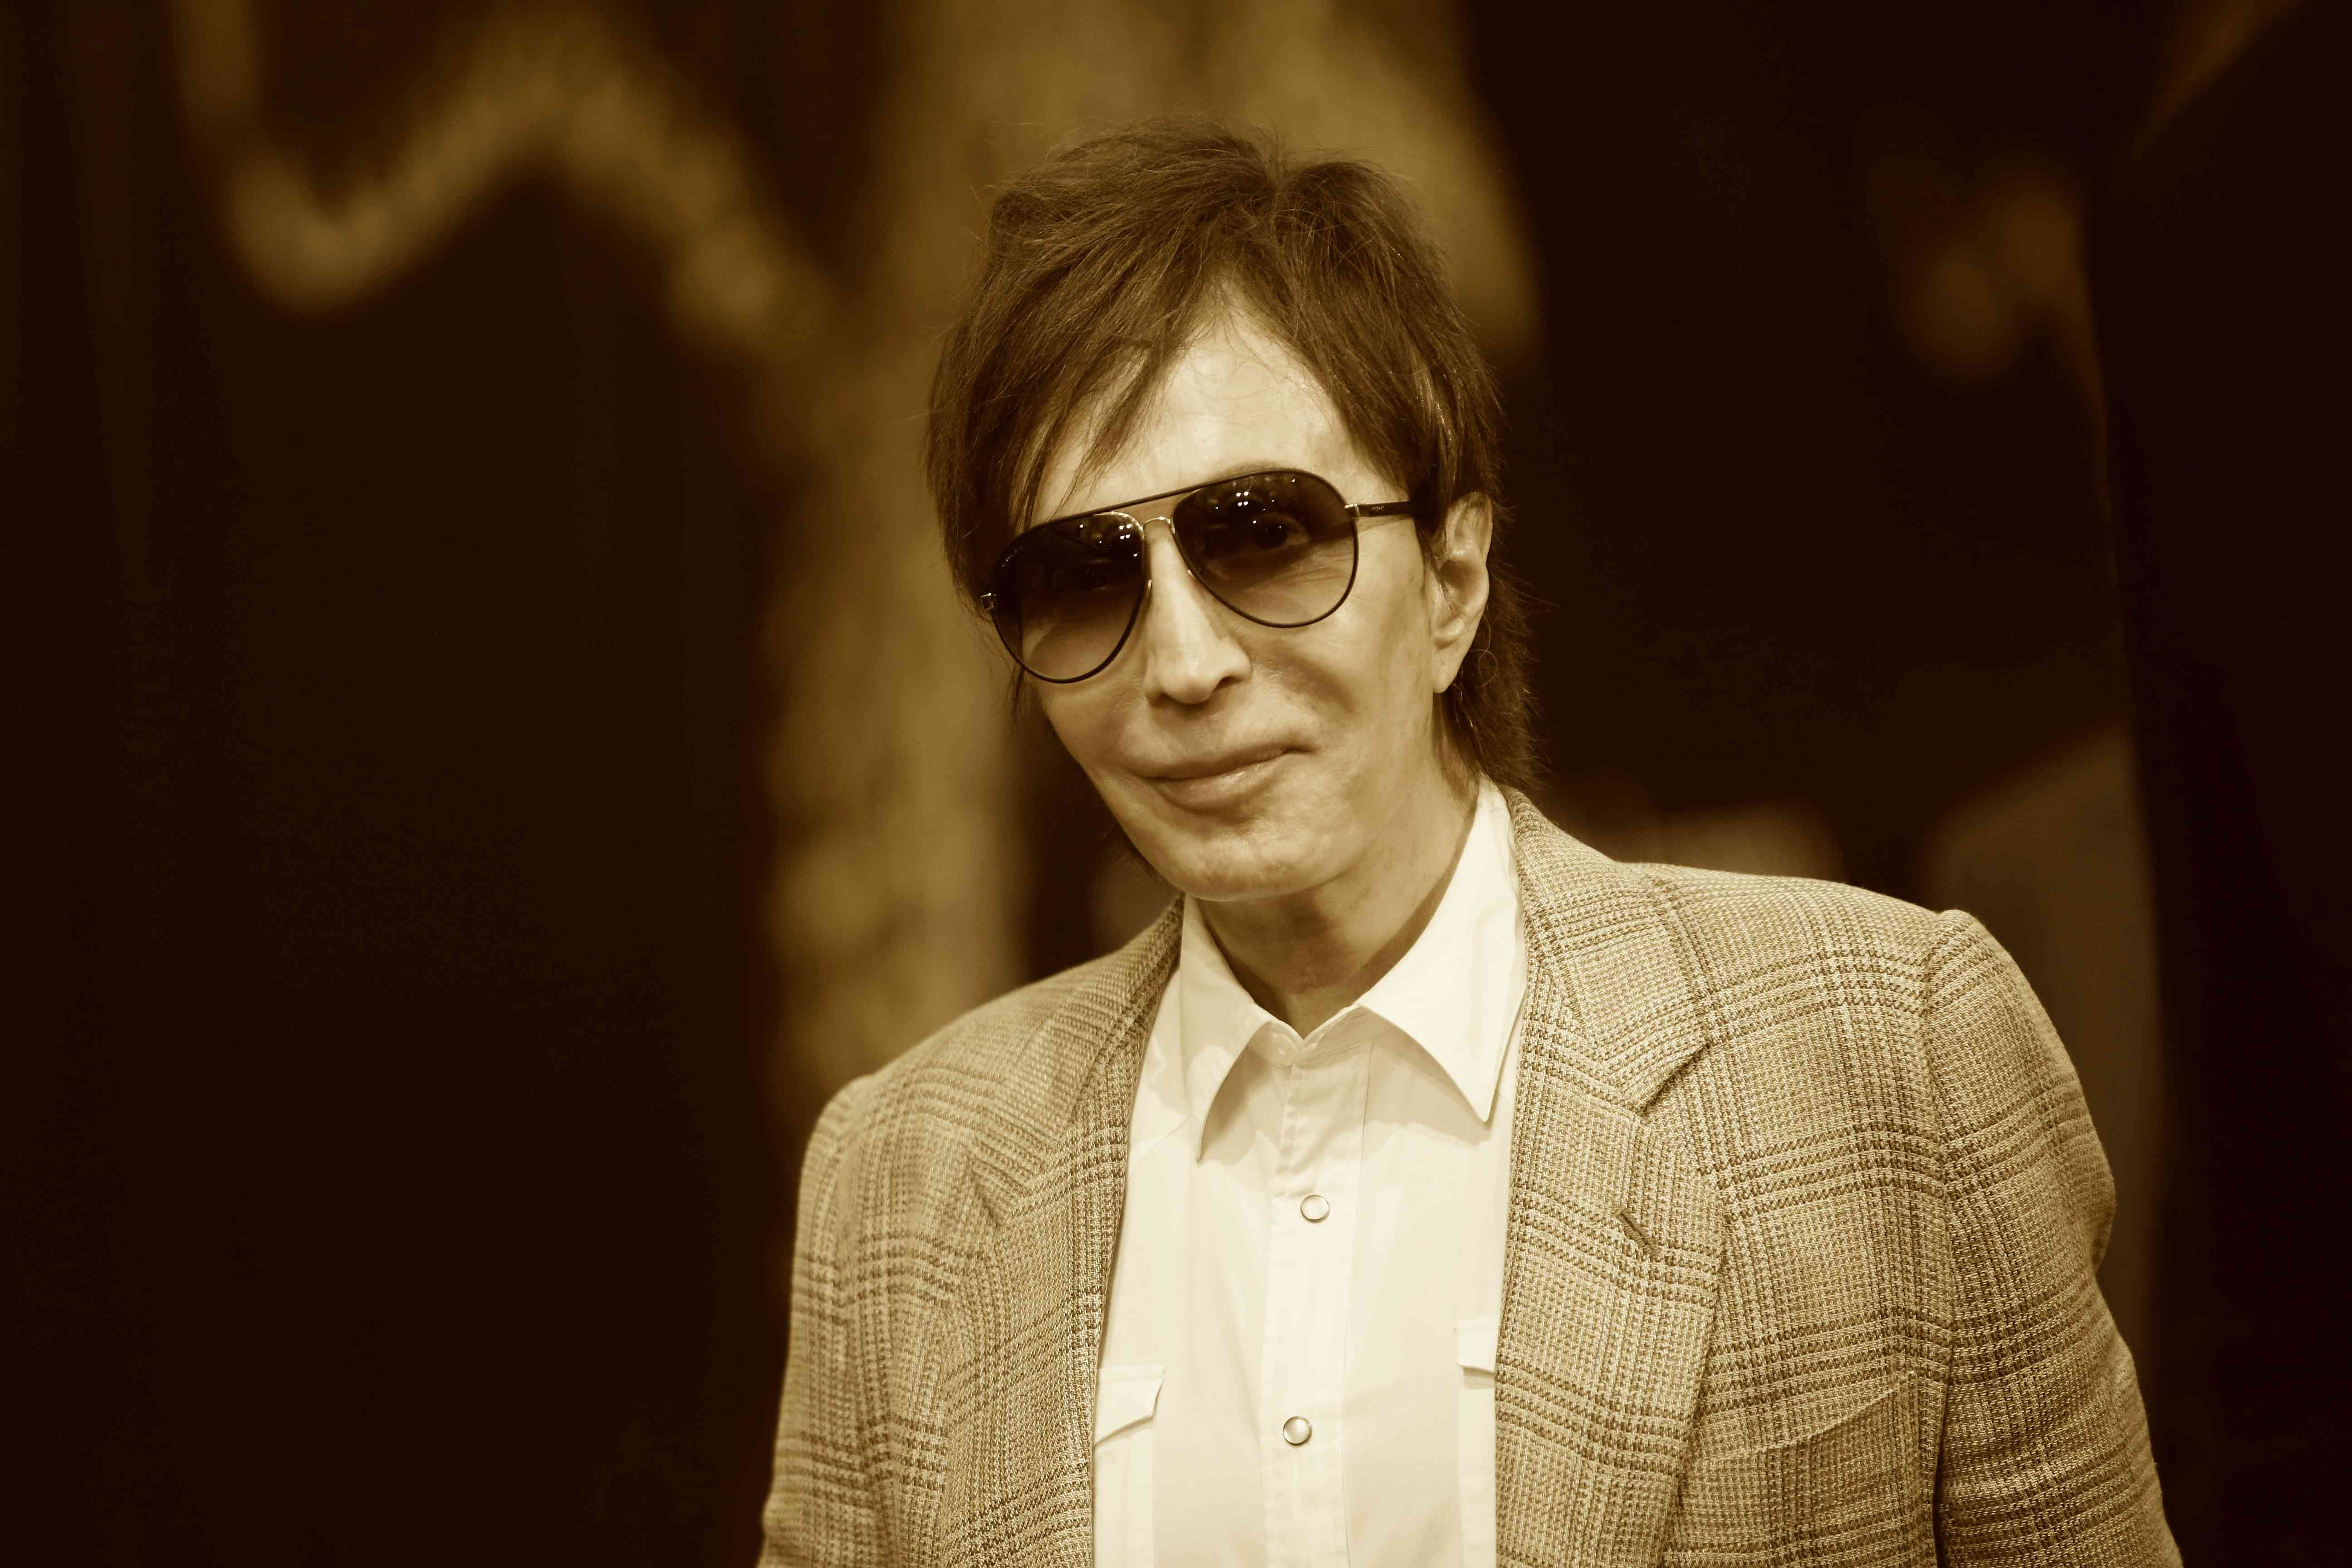 Michael Cimino (* 3. Februar 1939 in New York; † 2. Juli 2016)